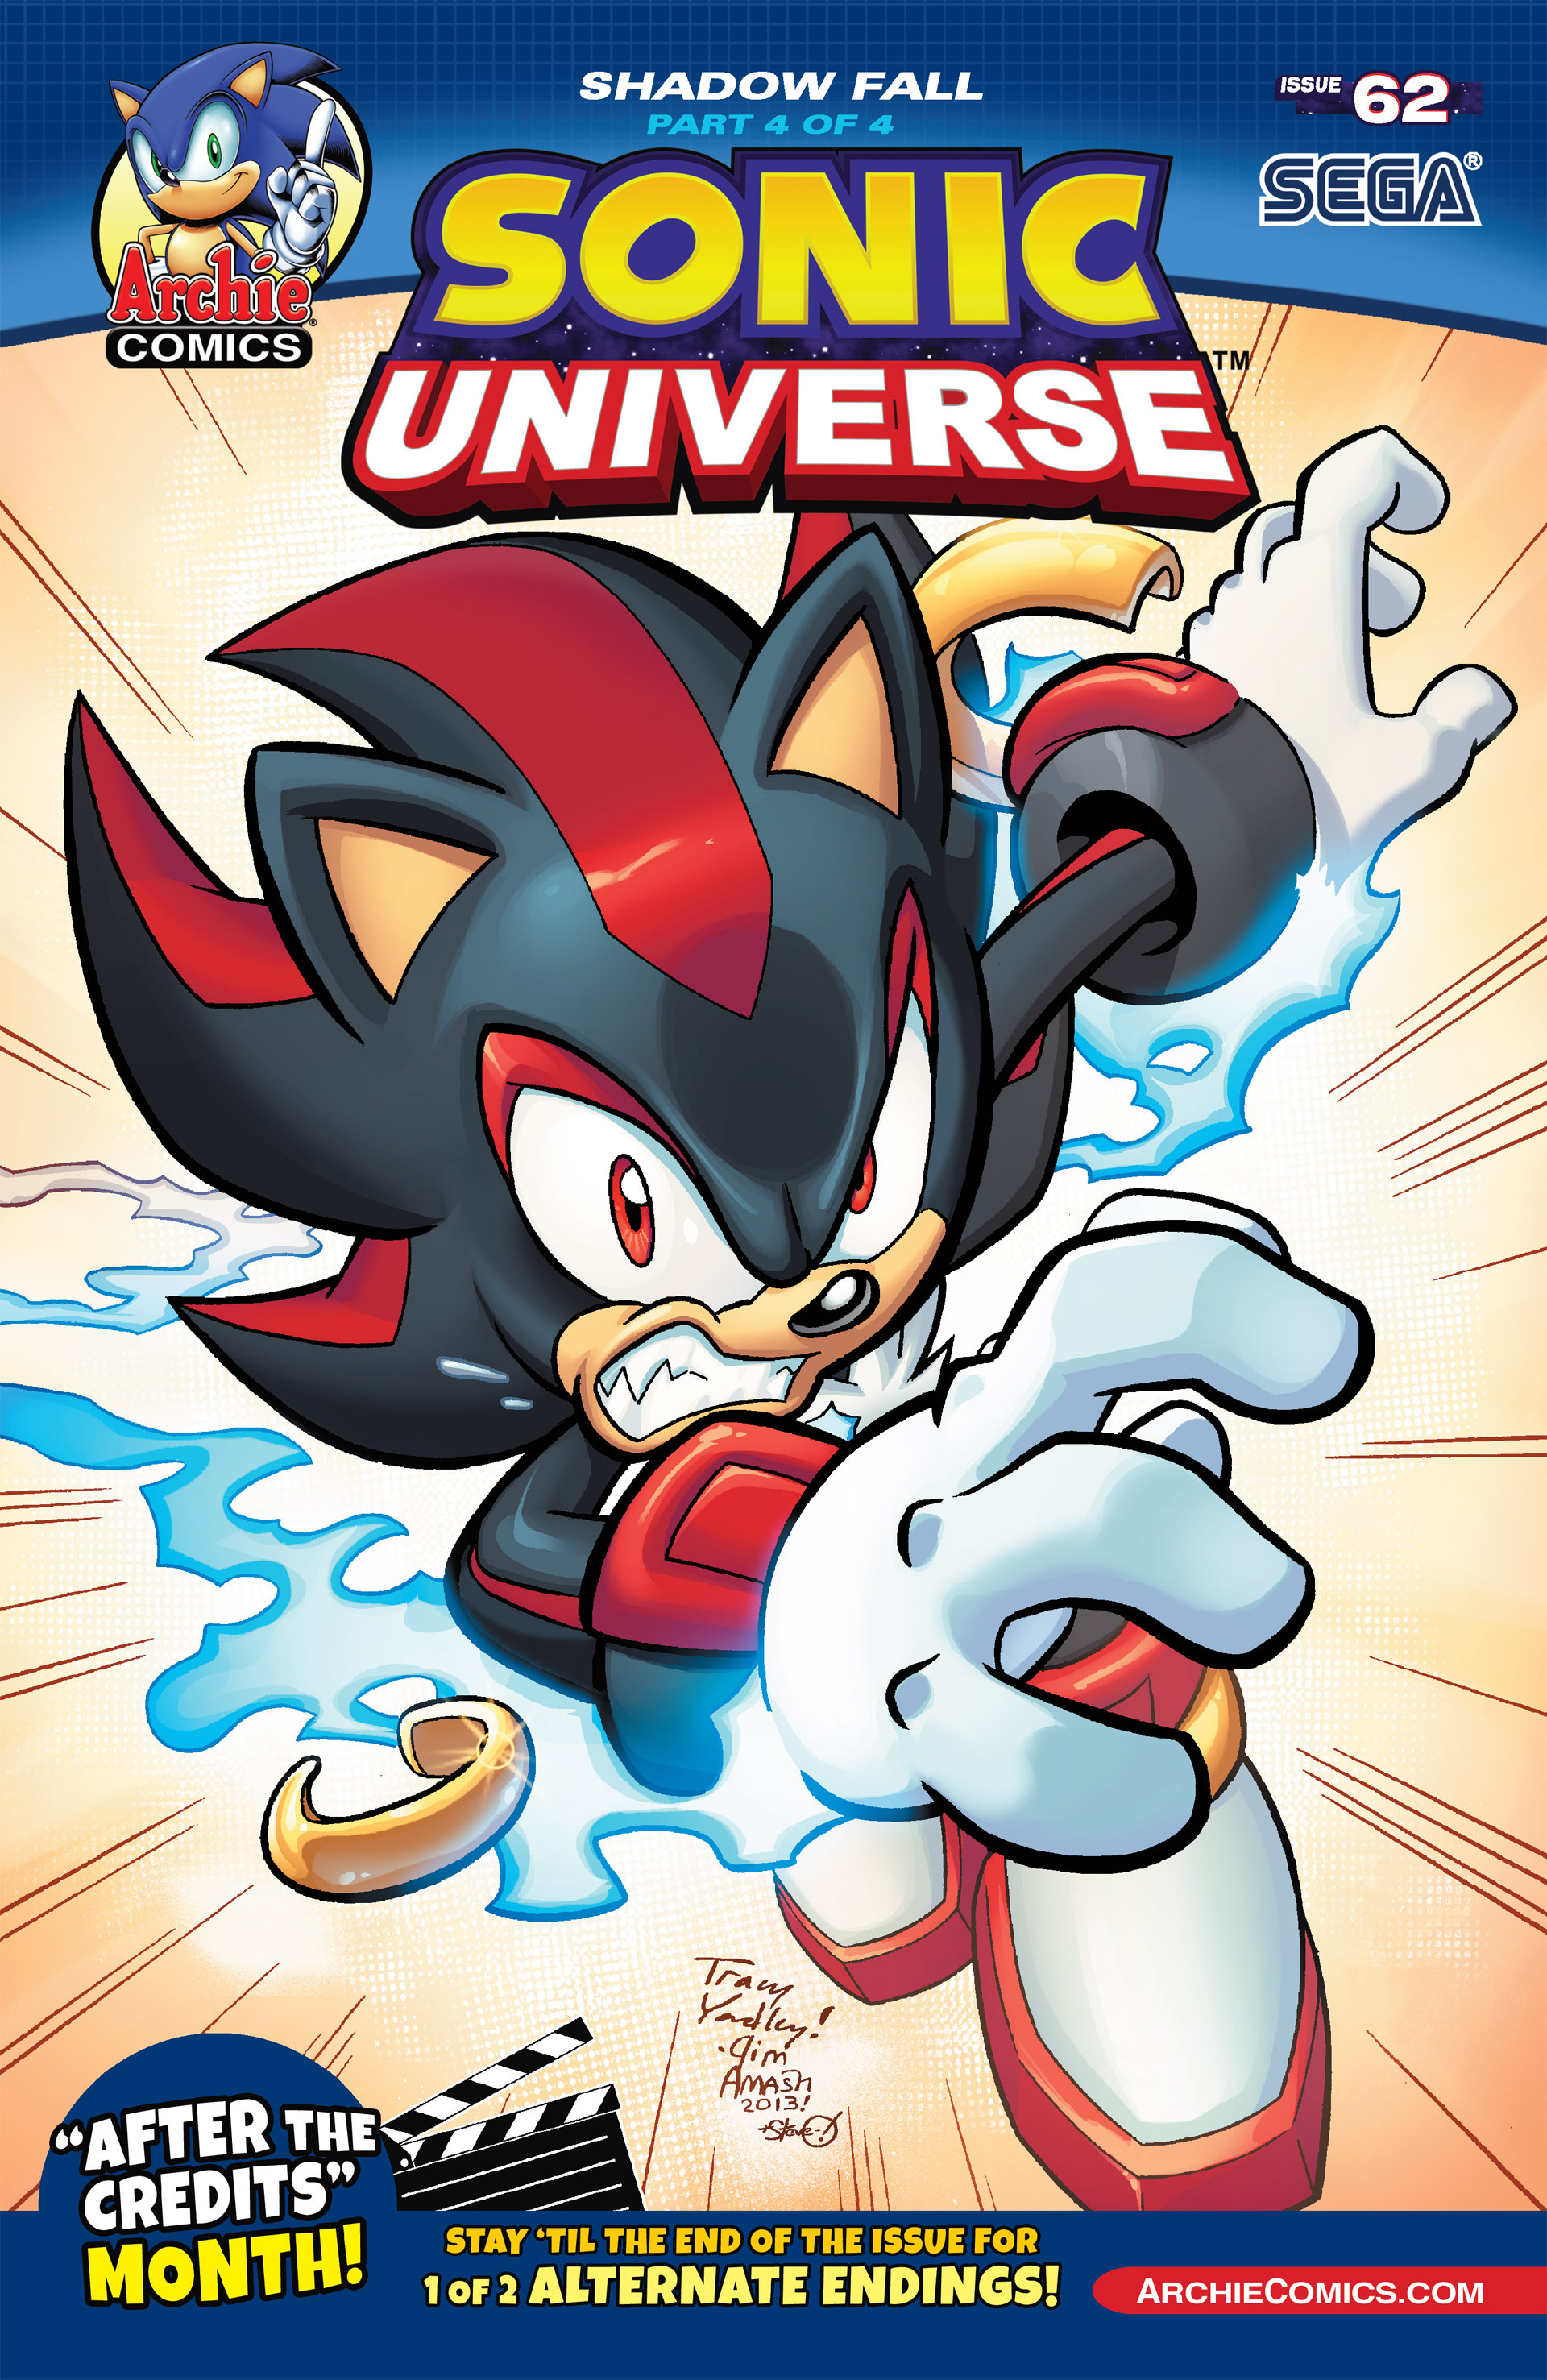 Sonic Universe Issue 62